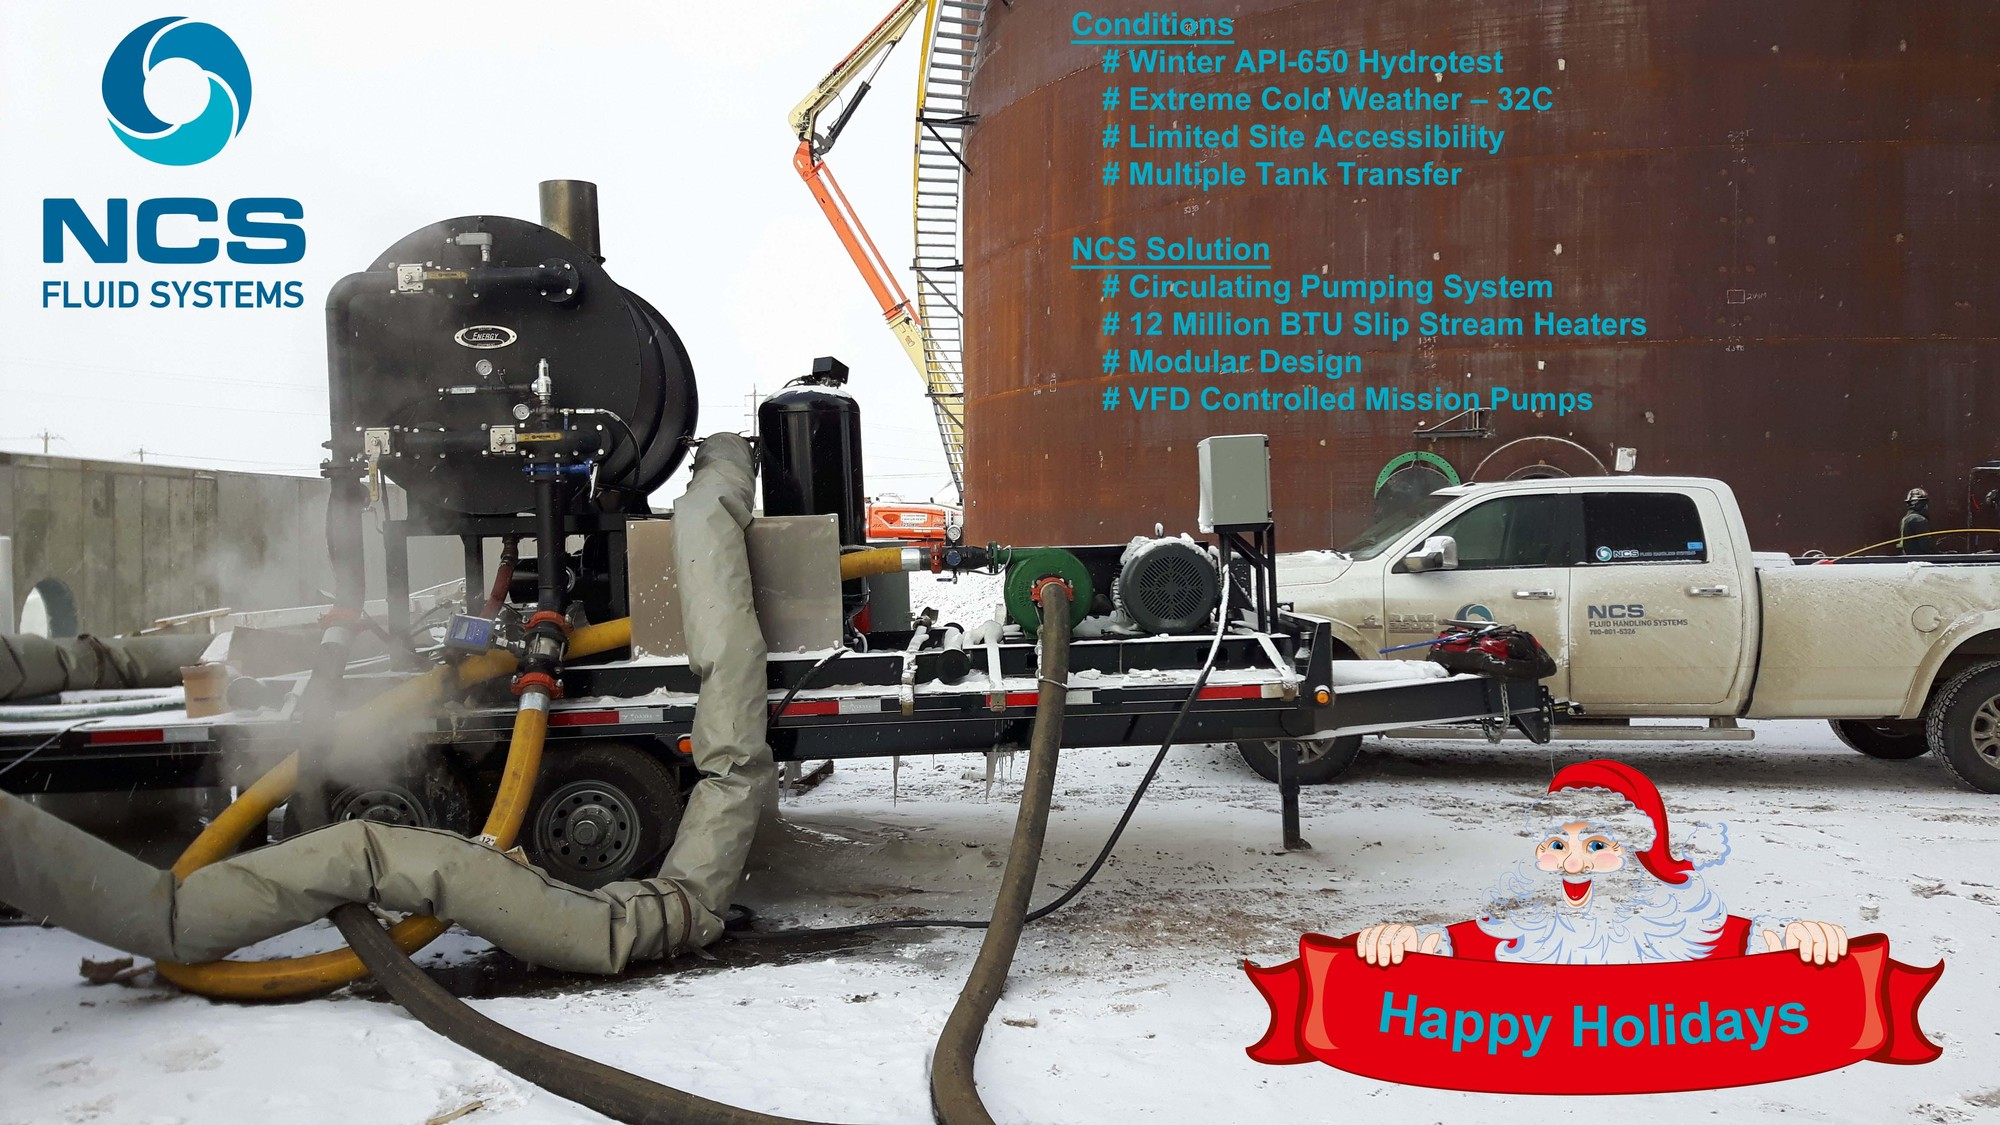 Specialized Heating Services Ncs Fluid Handling